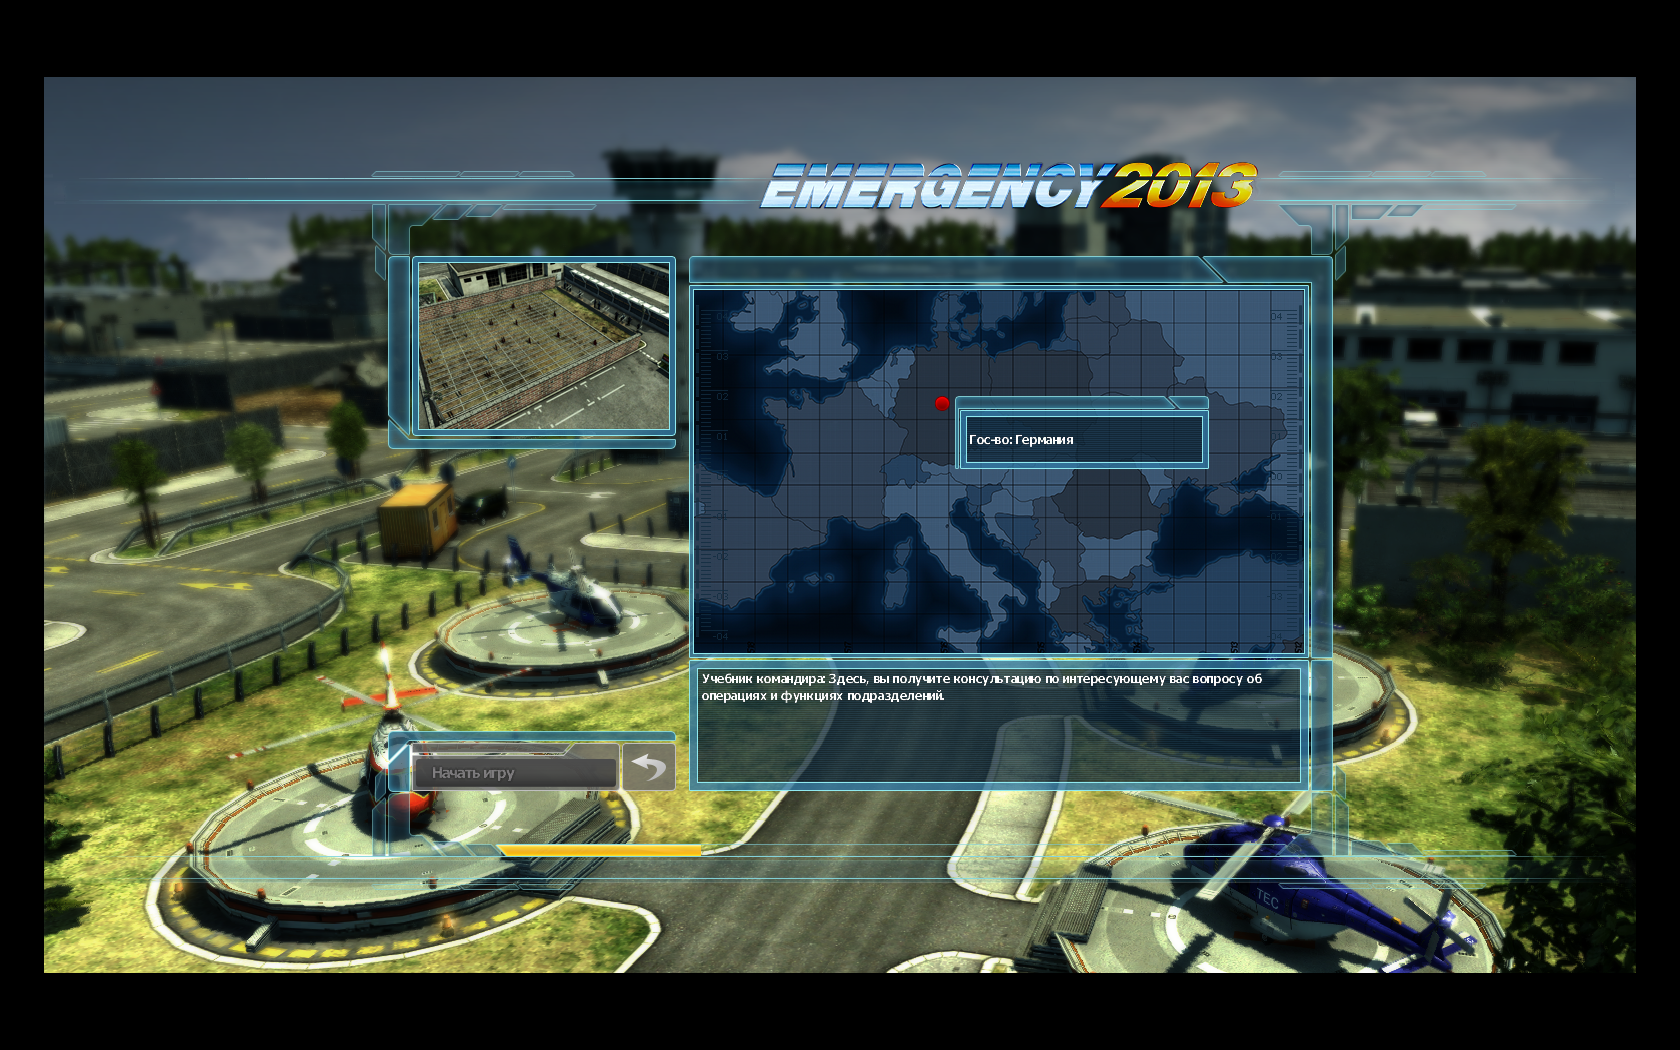 Описание Emergency 2013 - дополнение для игры Emergency 2012 The